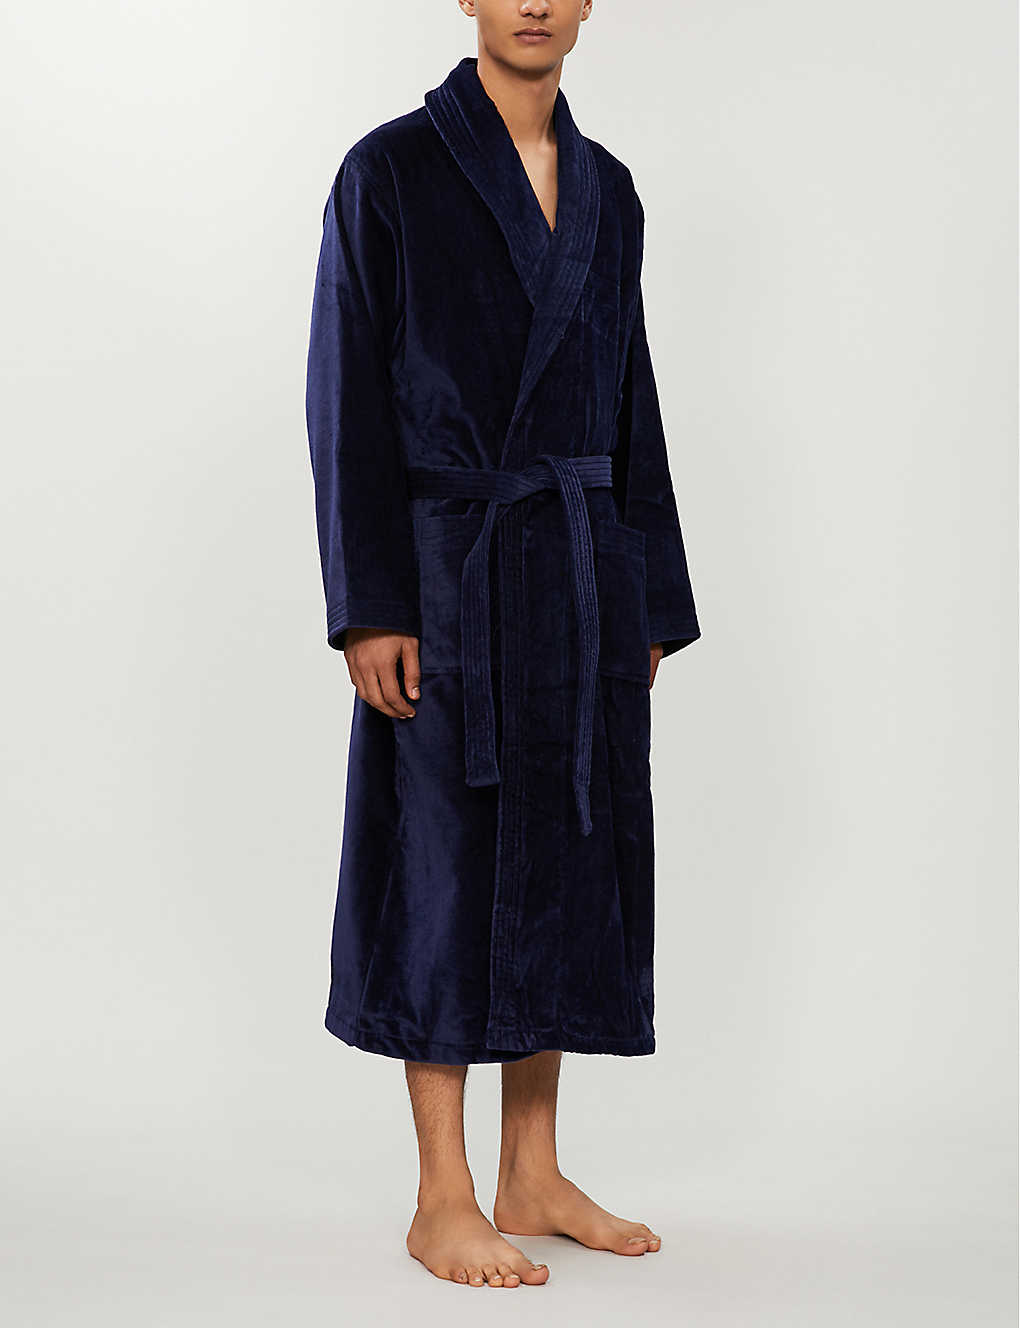 Dressing Gowns - Nightwear & loungewear - Clothing - Mens ...